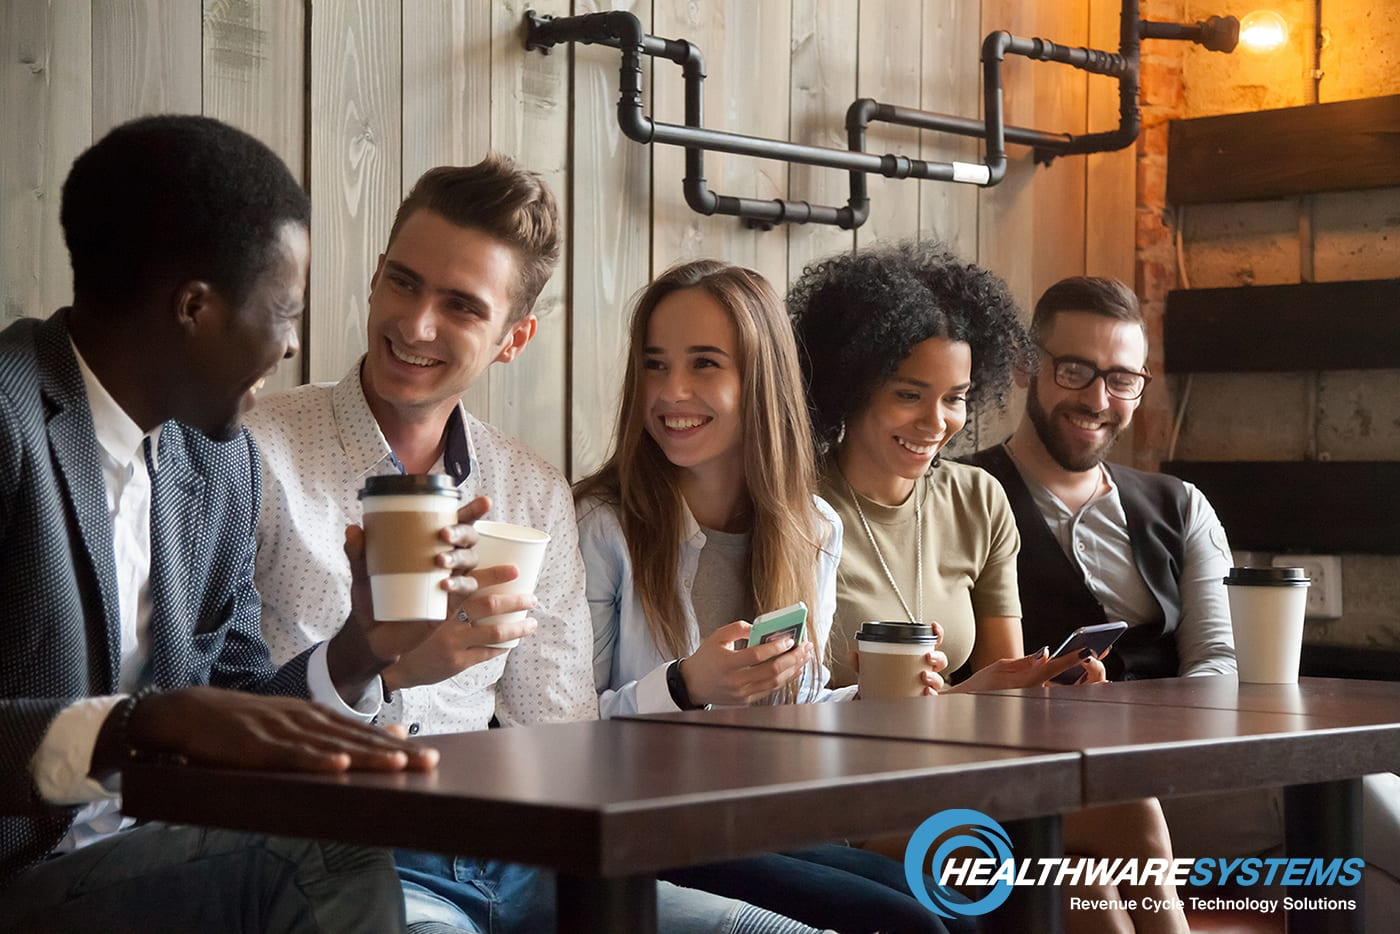 Appealing to Millennial patients: Millennials gathered at a table with smart phones and coffee.